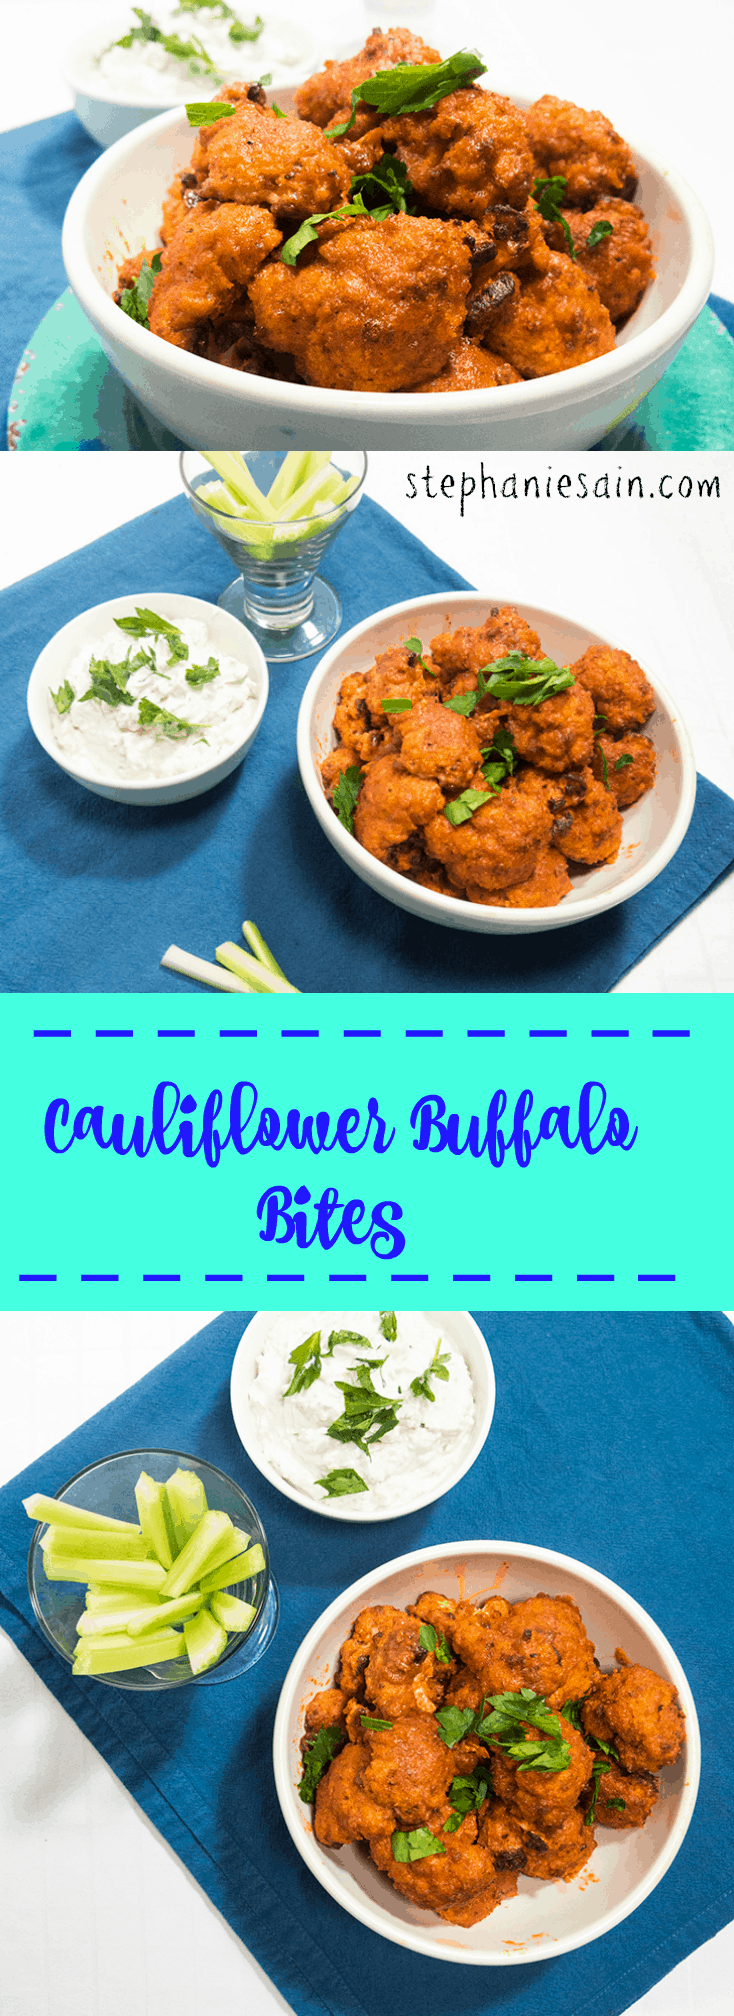 Cauliflower Buffalo Bites are a tasty, healthy option for buffalo wings. Vegetarian and Gluten Free.